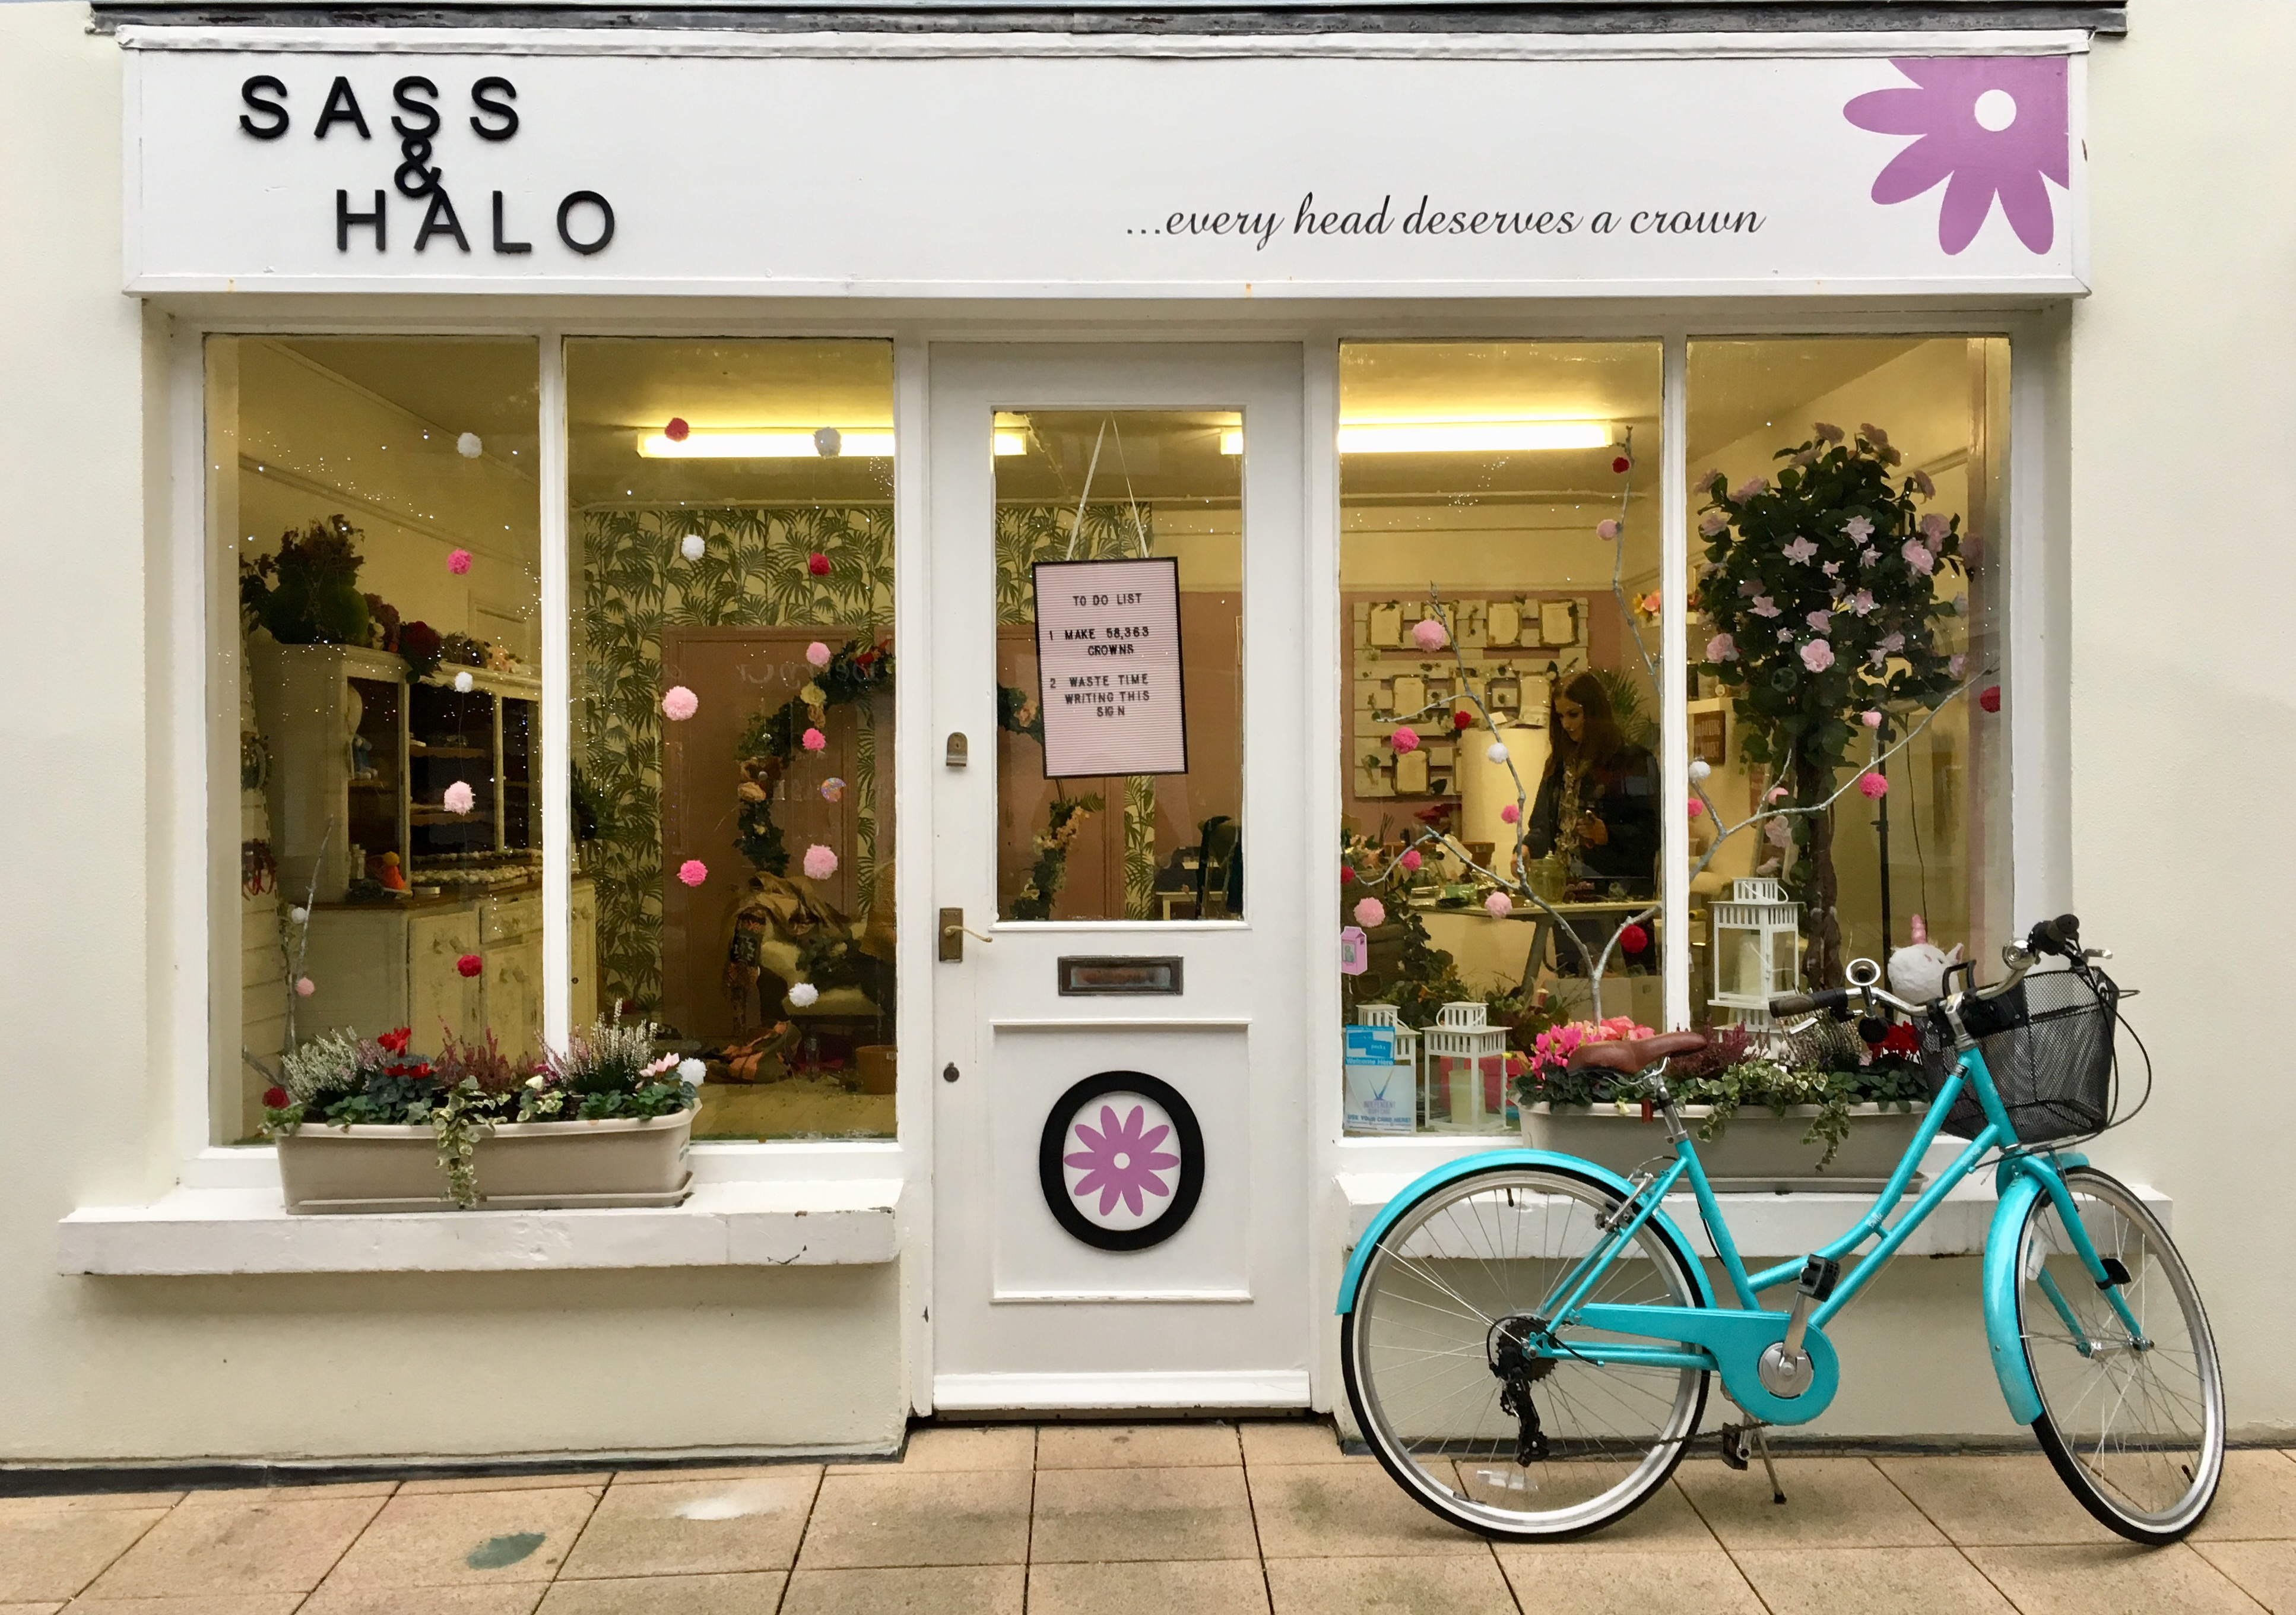 White shop front with flower crowns and blue bicycle parked outside